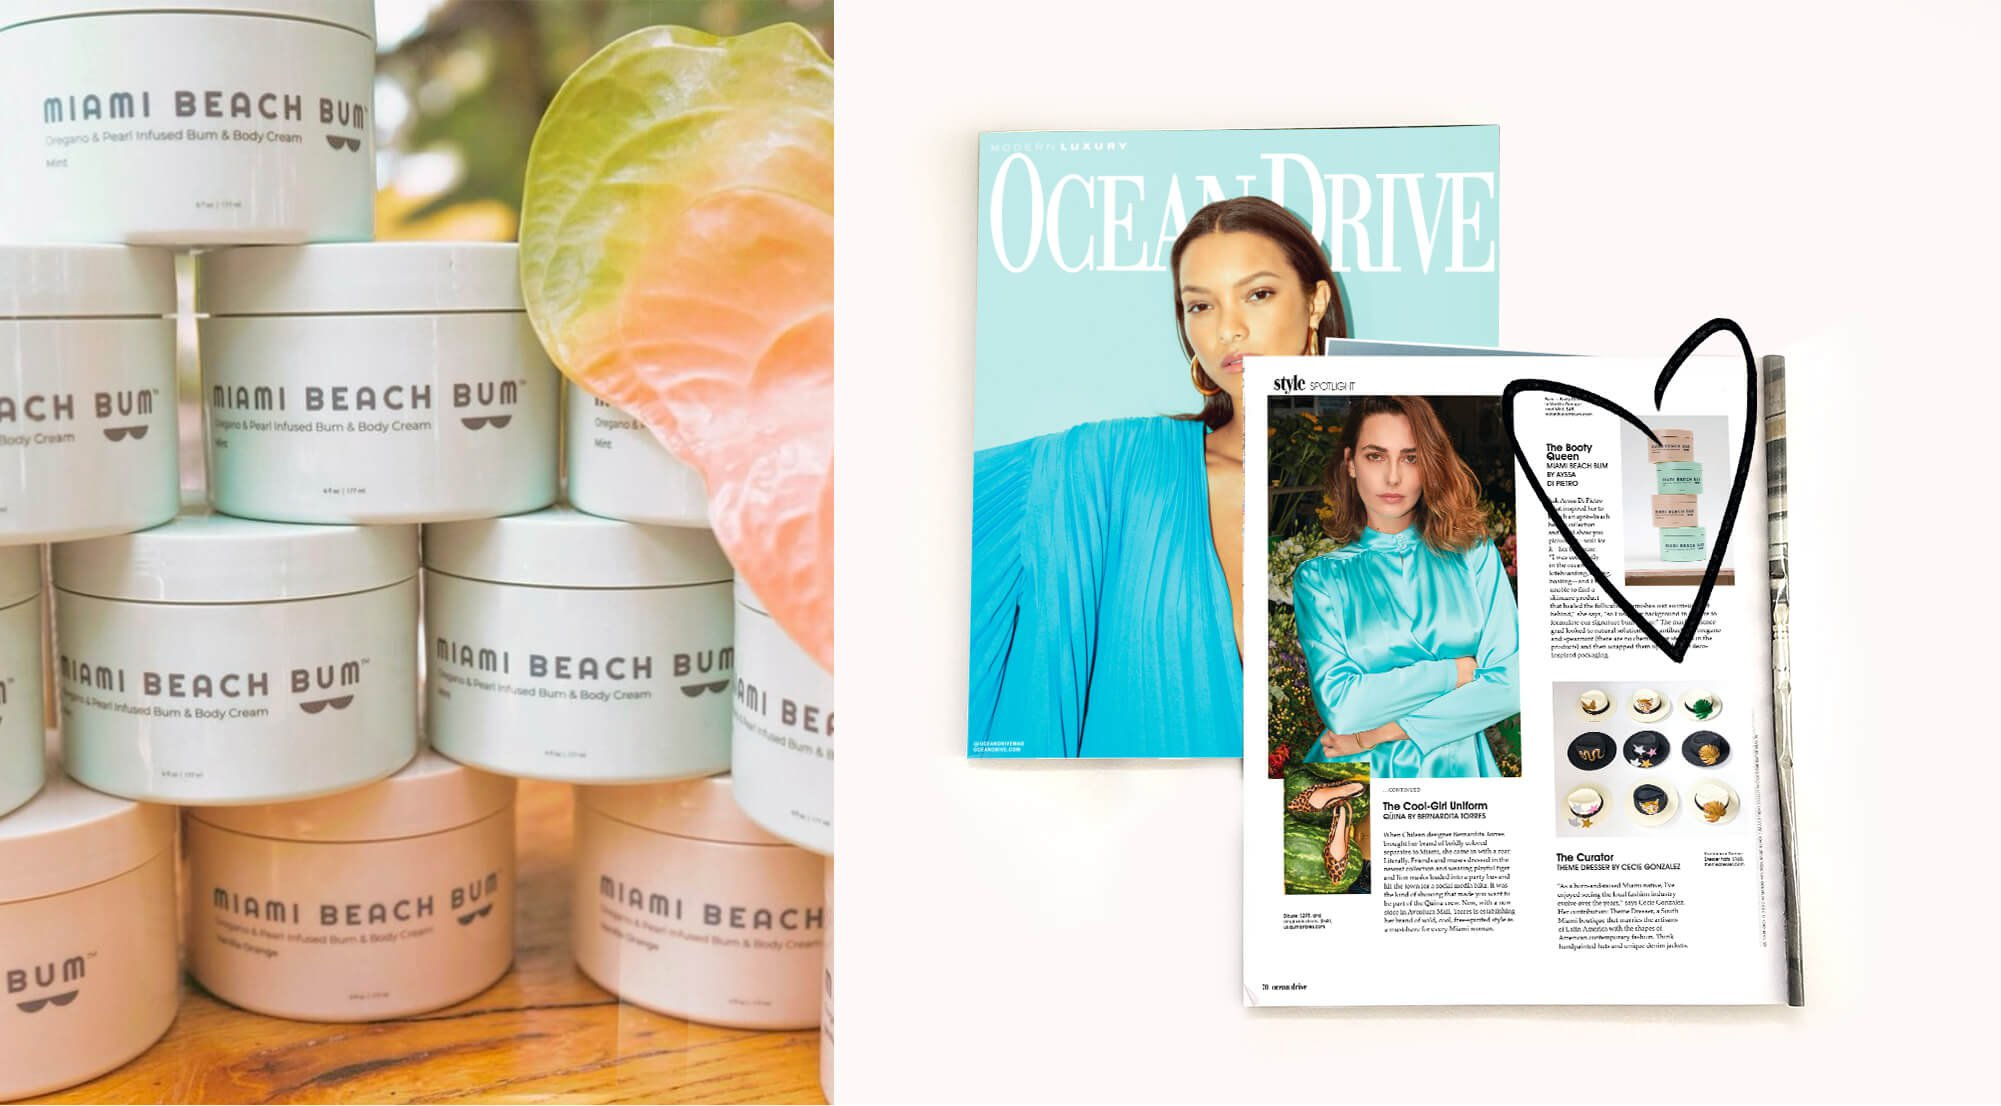 Jacober Creative Brand Identity for Miami beach Bum. Photo of packaging photography and a Press article in Ocean Drive.